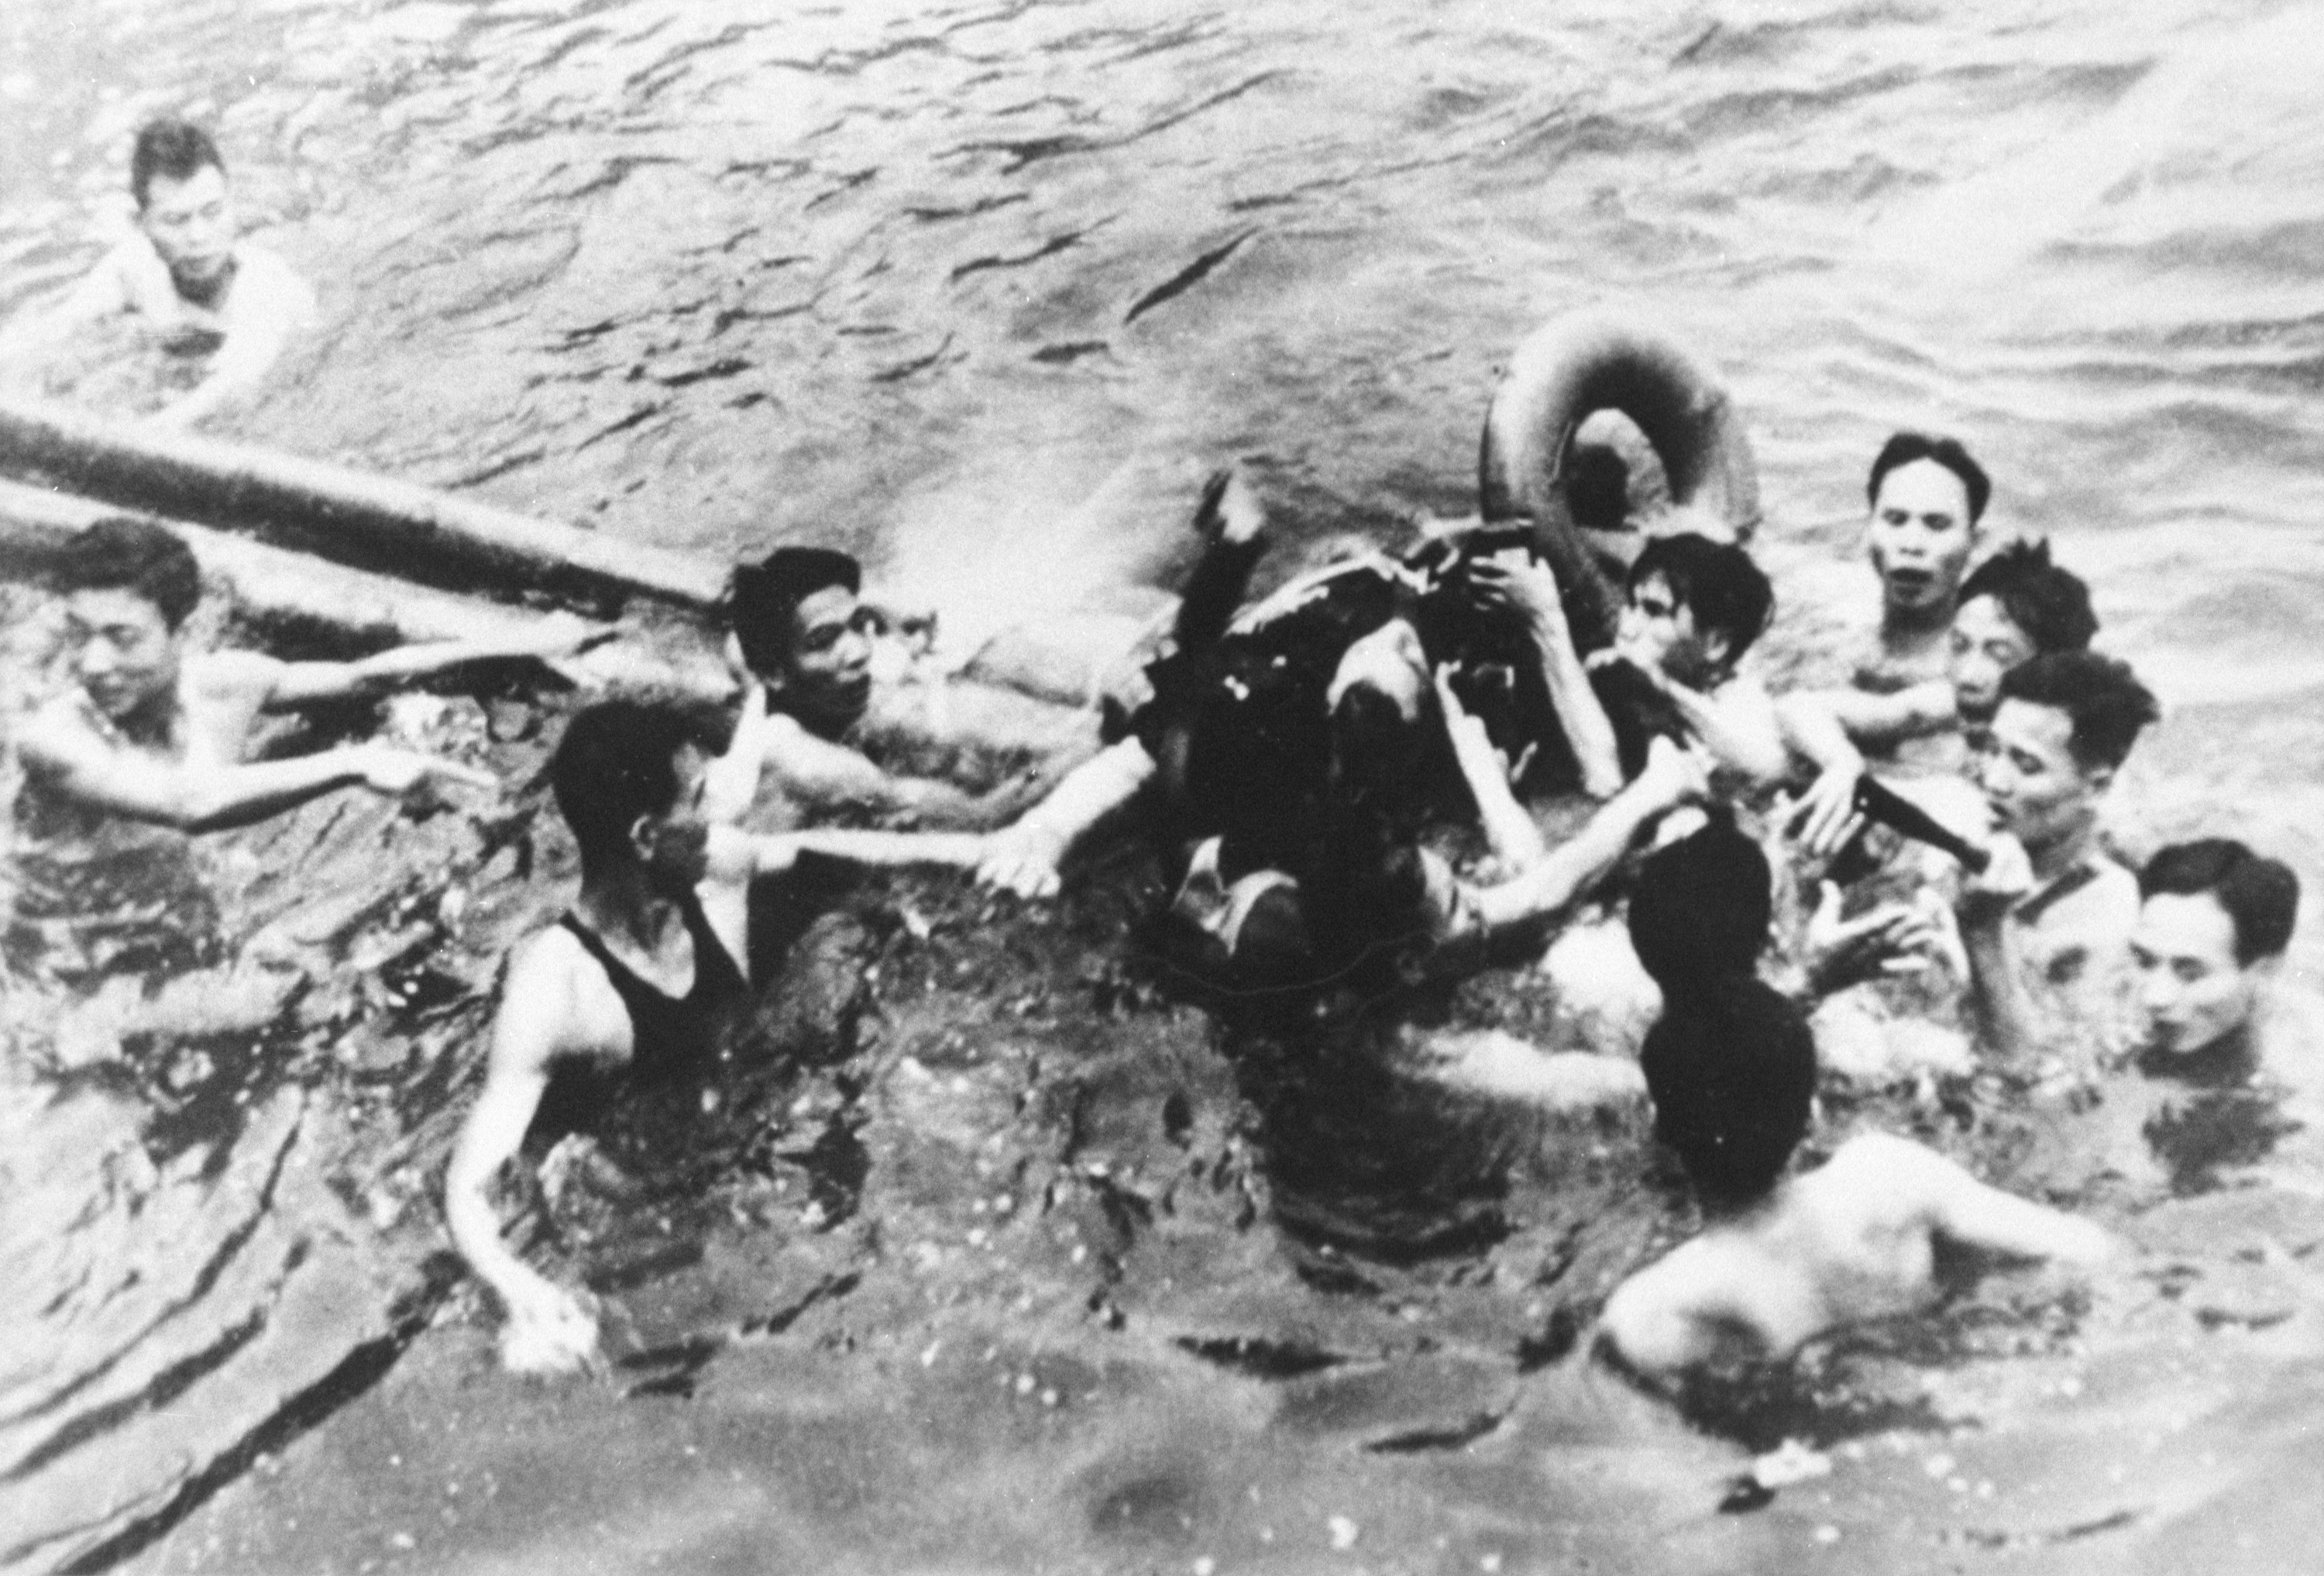 (File Photo) Senator John Mccain Is Pulled Out Of A Hanoi Lake By North Vietnamese Army Soldiers And Civilians October 26, 1967 In Hanoi, North Vietnam. Mccain's A-4E Skyhawk Was Shot Down By A Surface-To-Air Missile. Mccain Broke Both Arms And His Right Knee Upon Ejection And Lost Consciousness Until He Hit The Water.